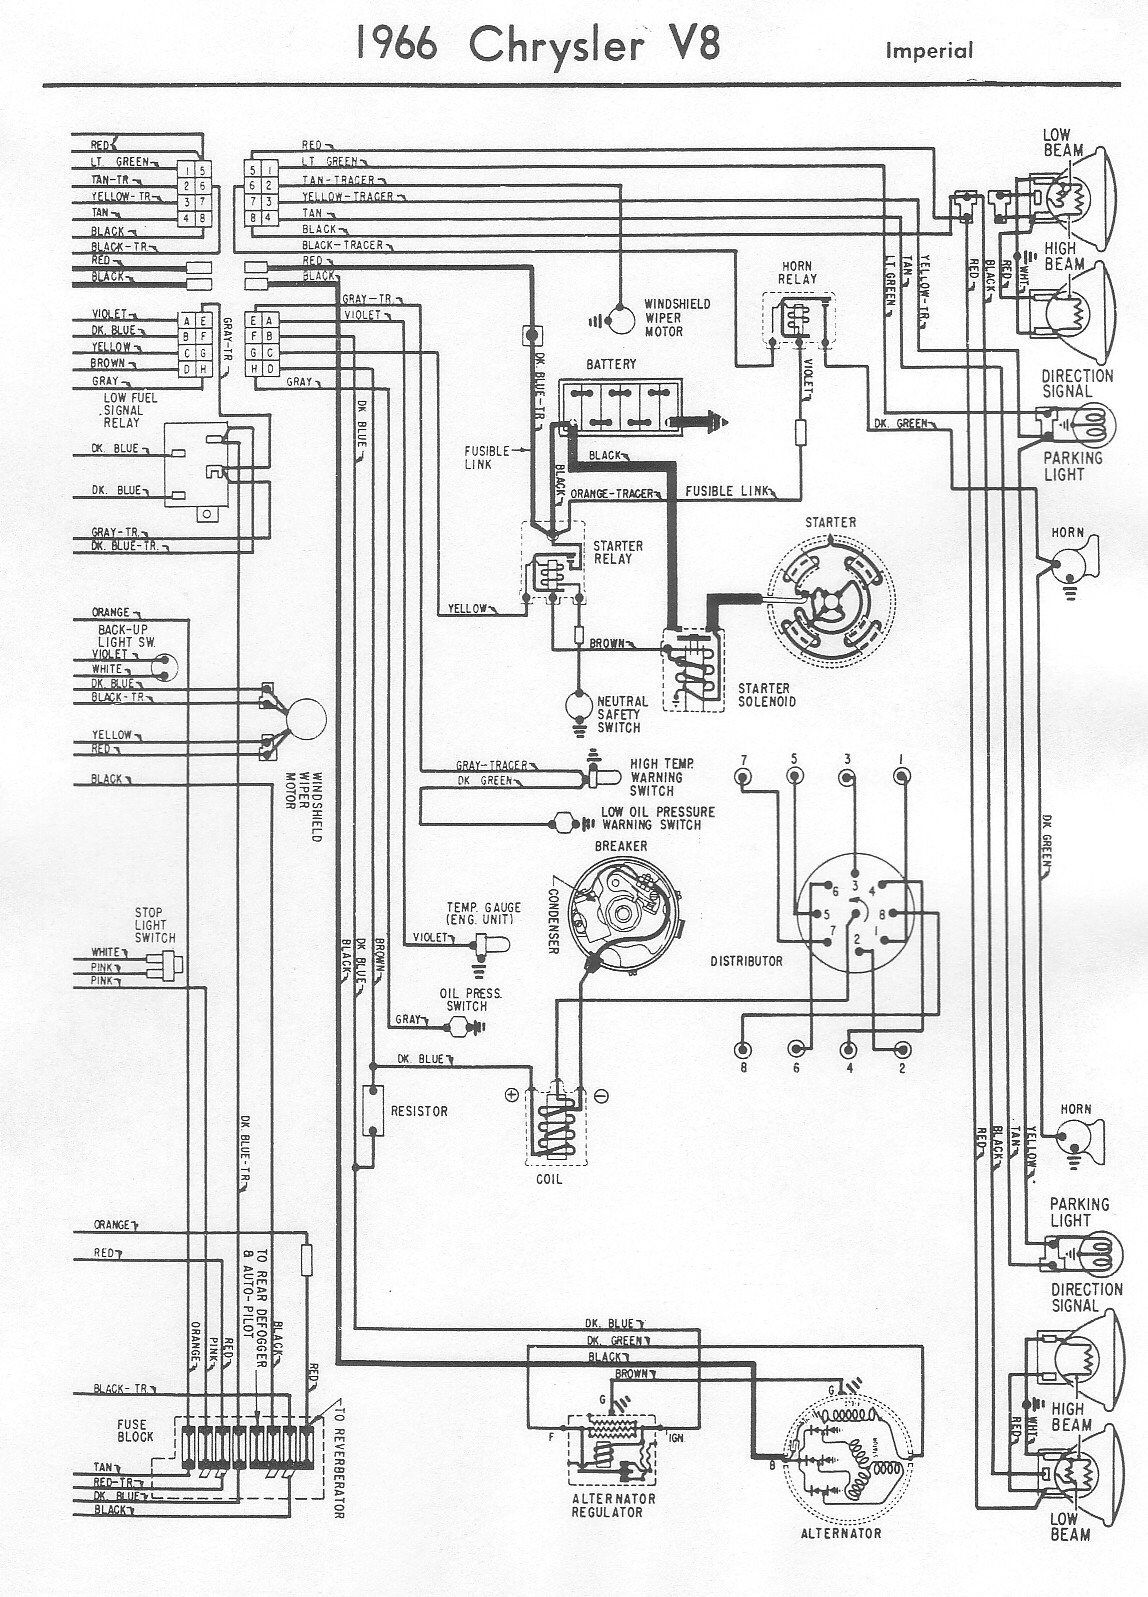 1961 Chrysler Wiring Diagram | Wiring Schematic Diagram on